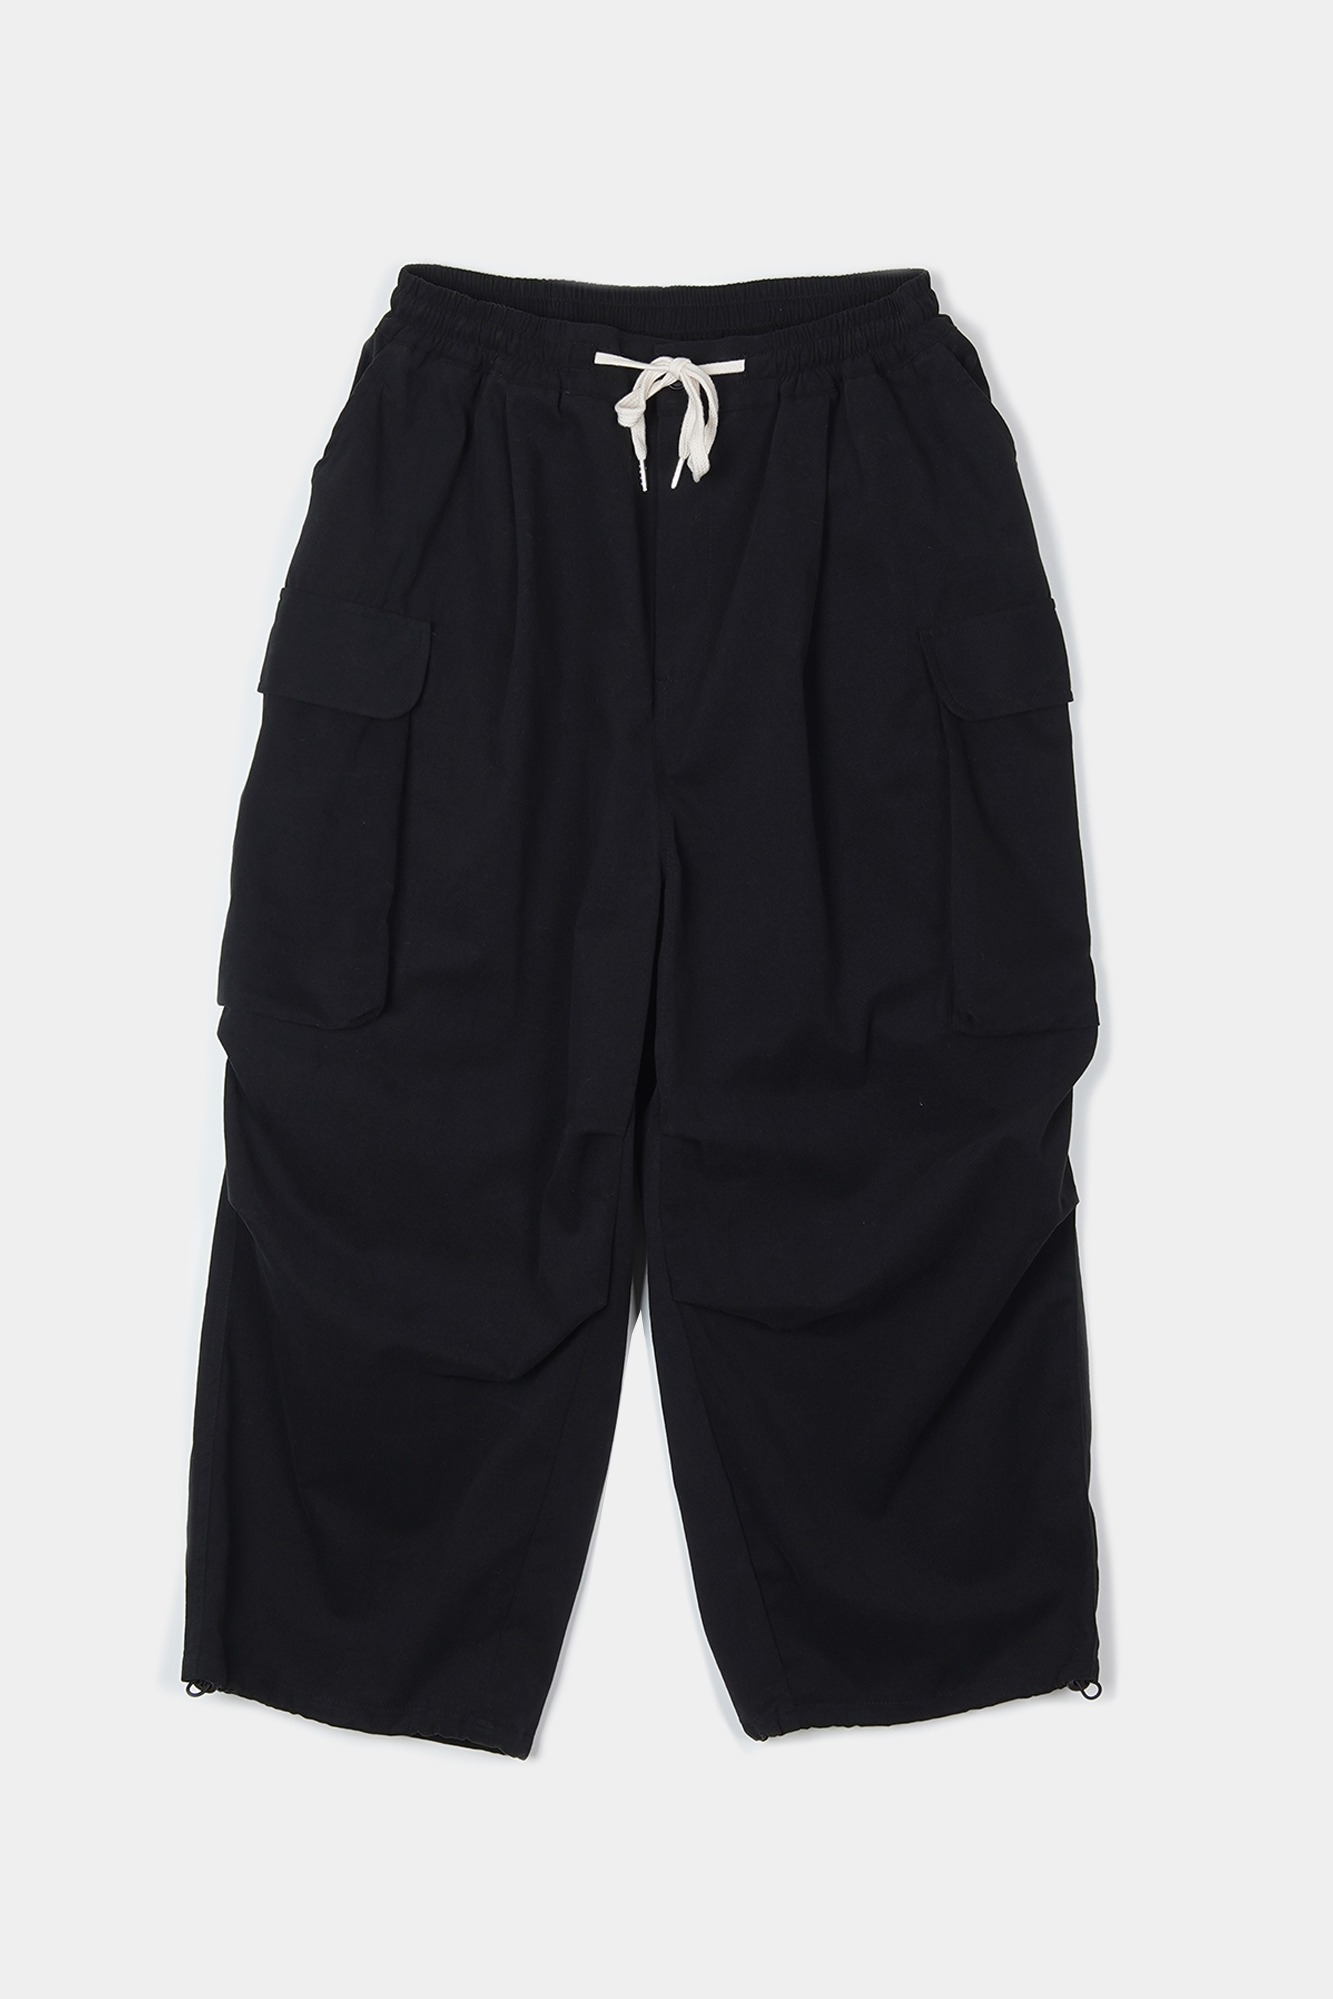 "CONICHIWA BONJOUR Wide Cargo Pants ""Black"""